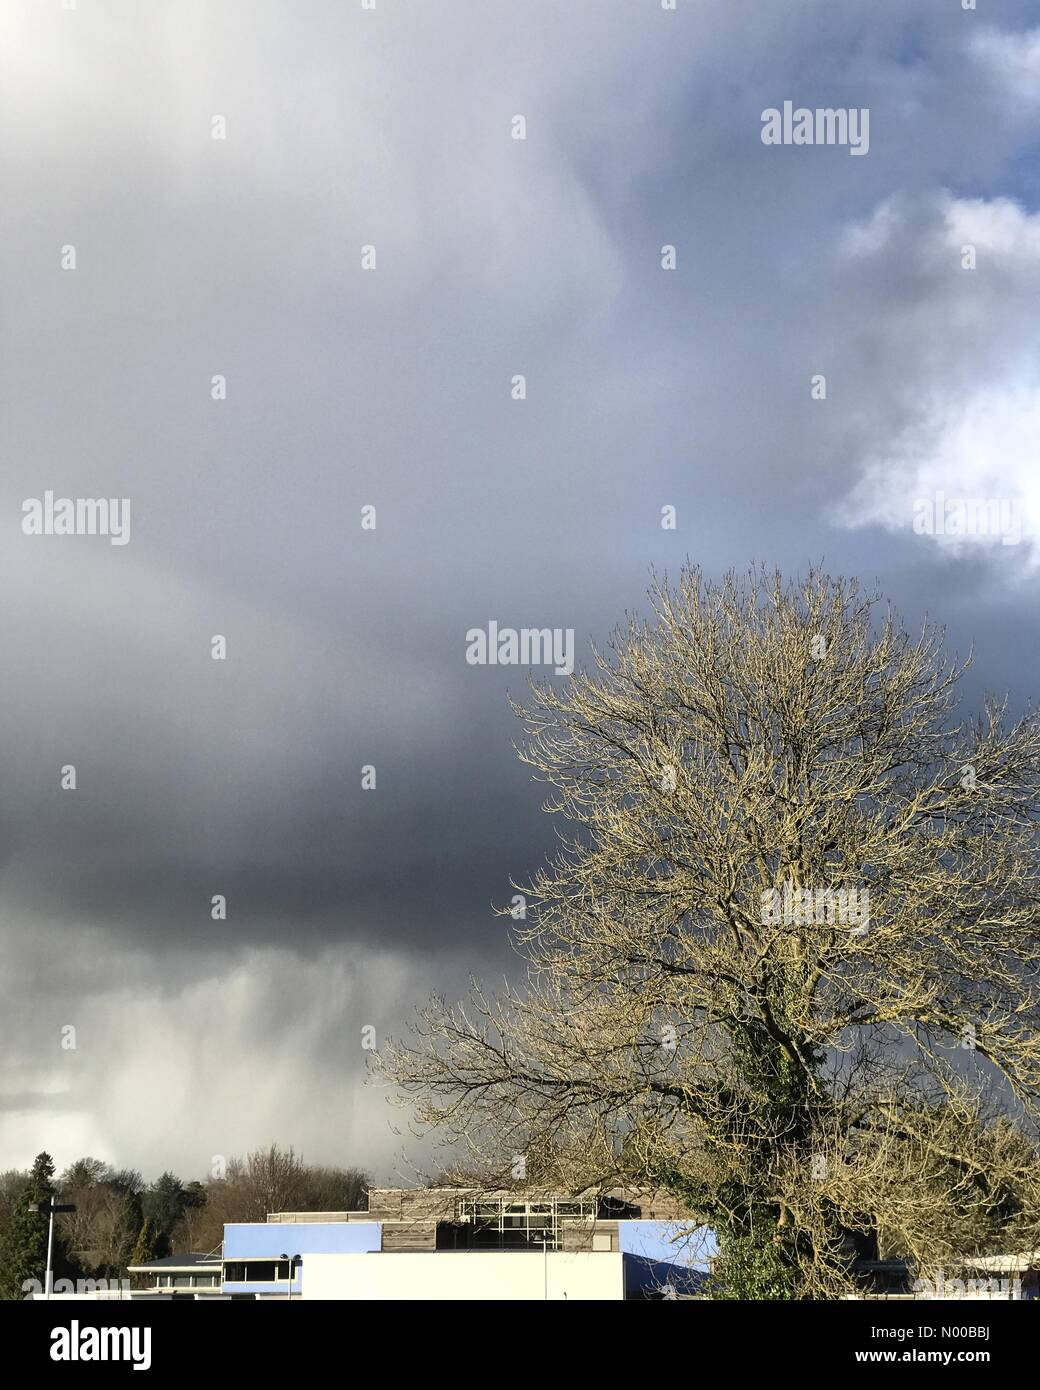 Godalming, UK. 27th Feb, 2017. UK Weather: Storm clouds over Godalming. Tuesley Ln, Godalming. 27th Feb 2017. Unstable - Stock Image